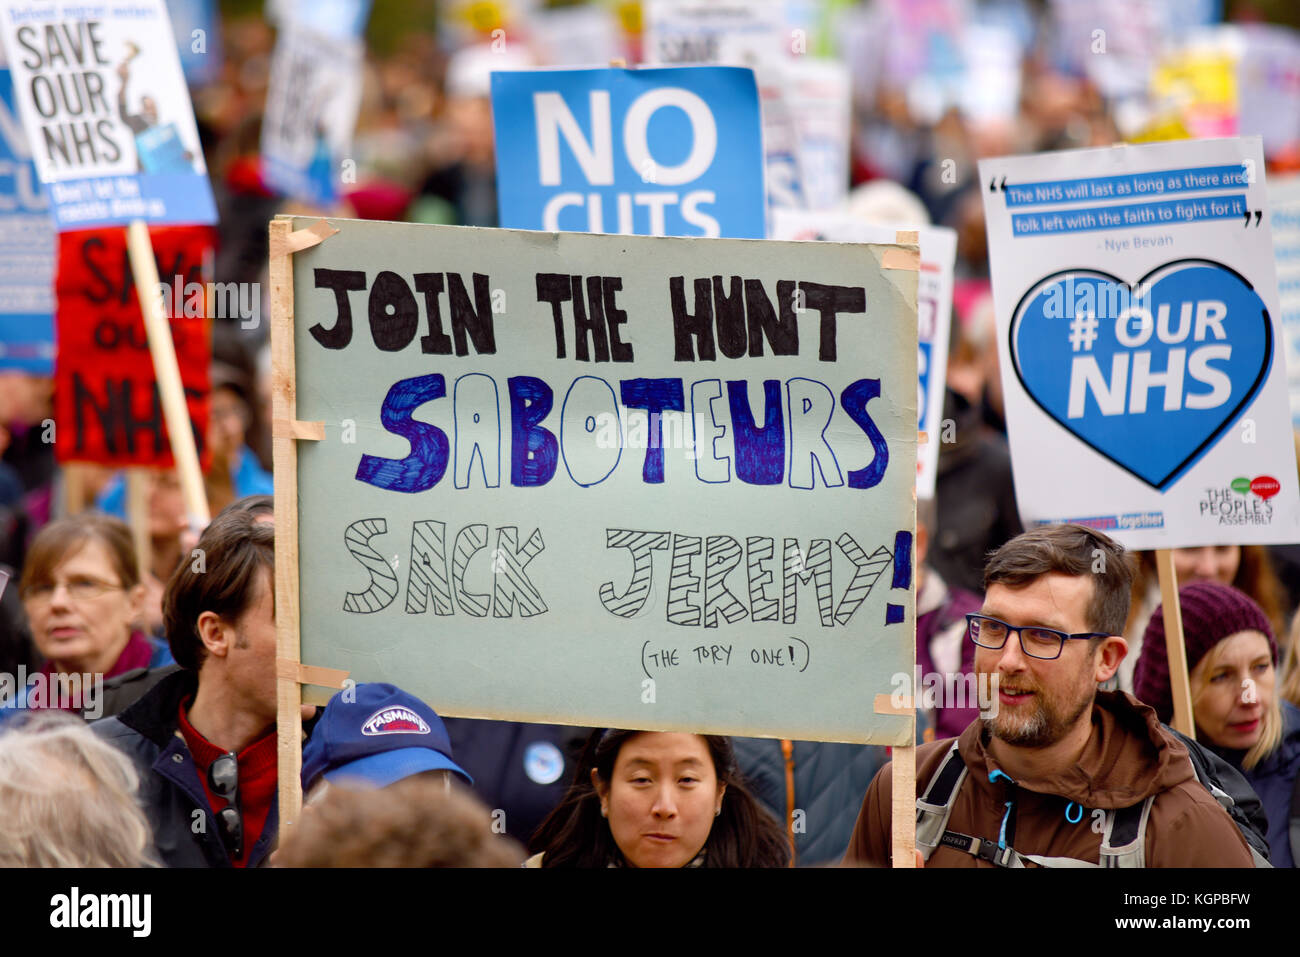 Join the Hunt saboteurs placard during Our NHS protest demonstration rally march against alleged UK Tory Conservative - Stock Image